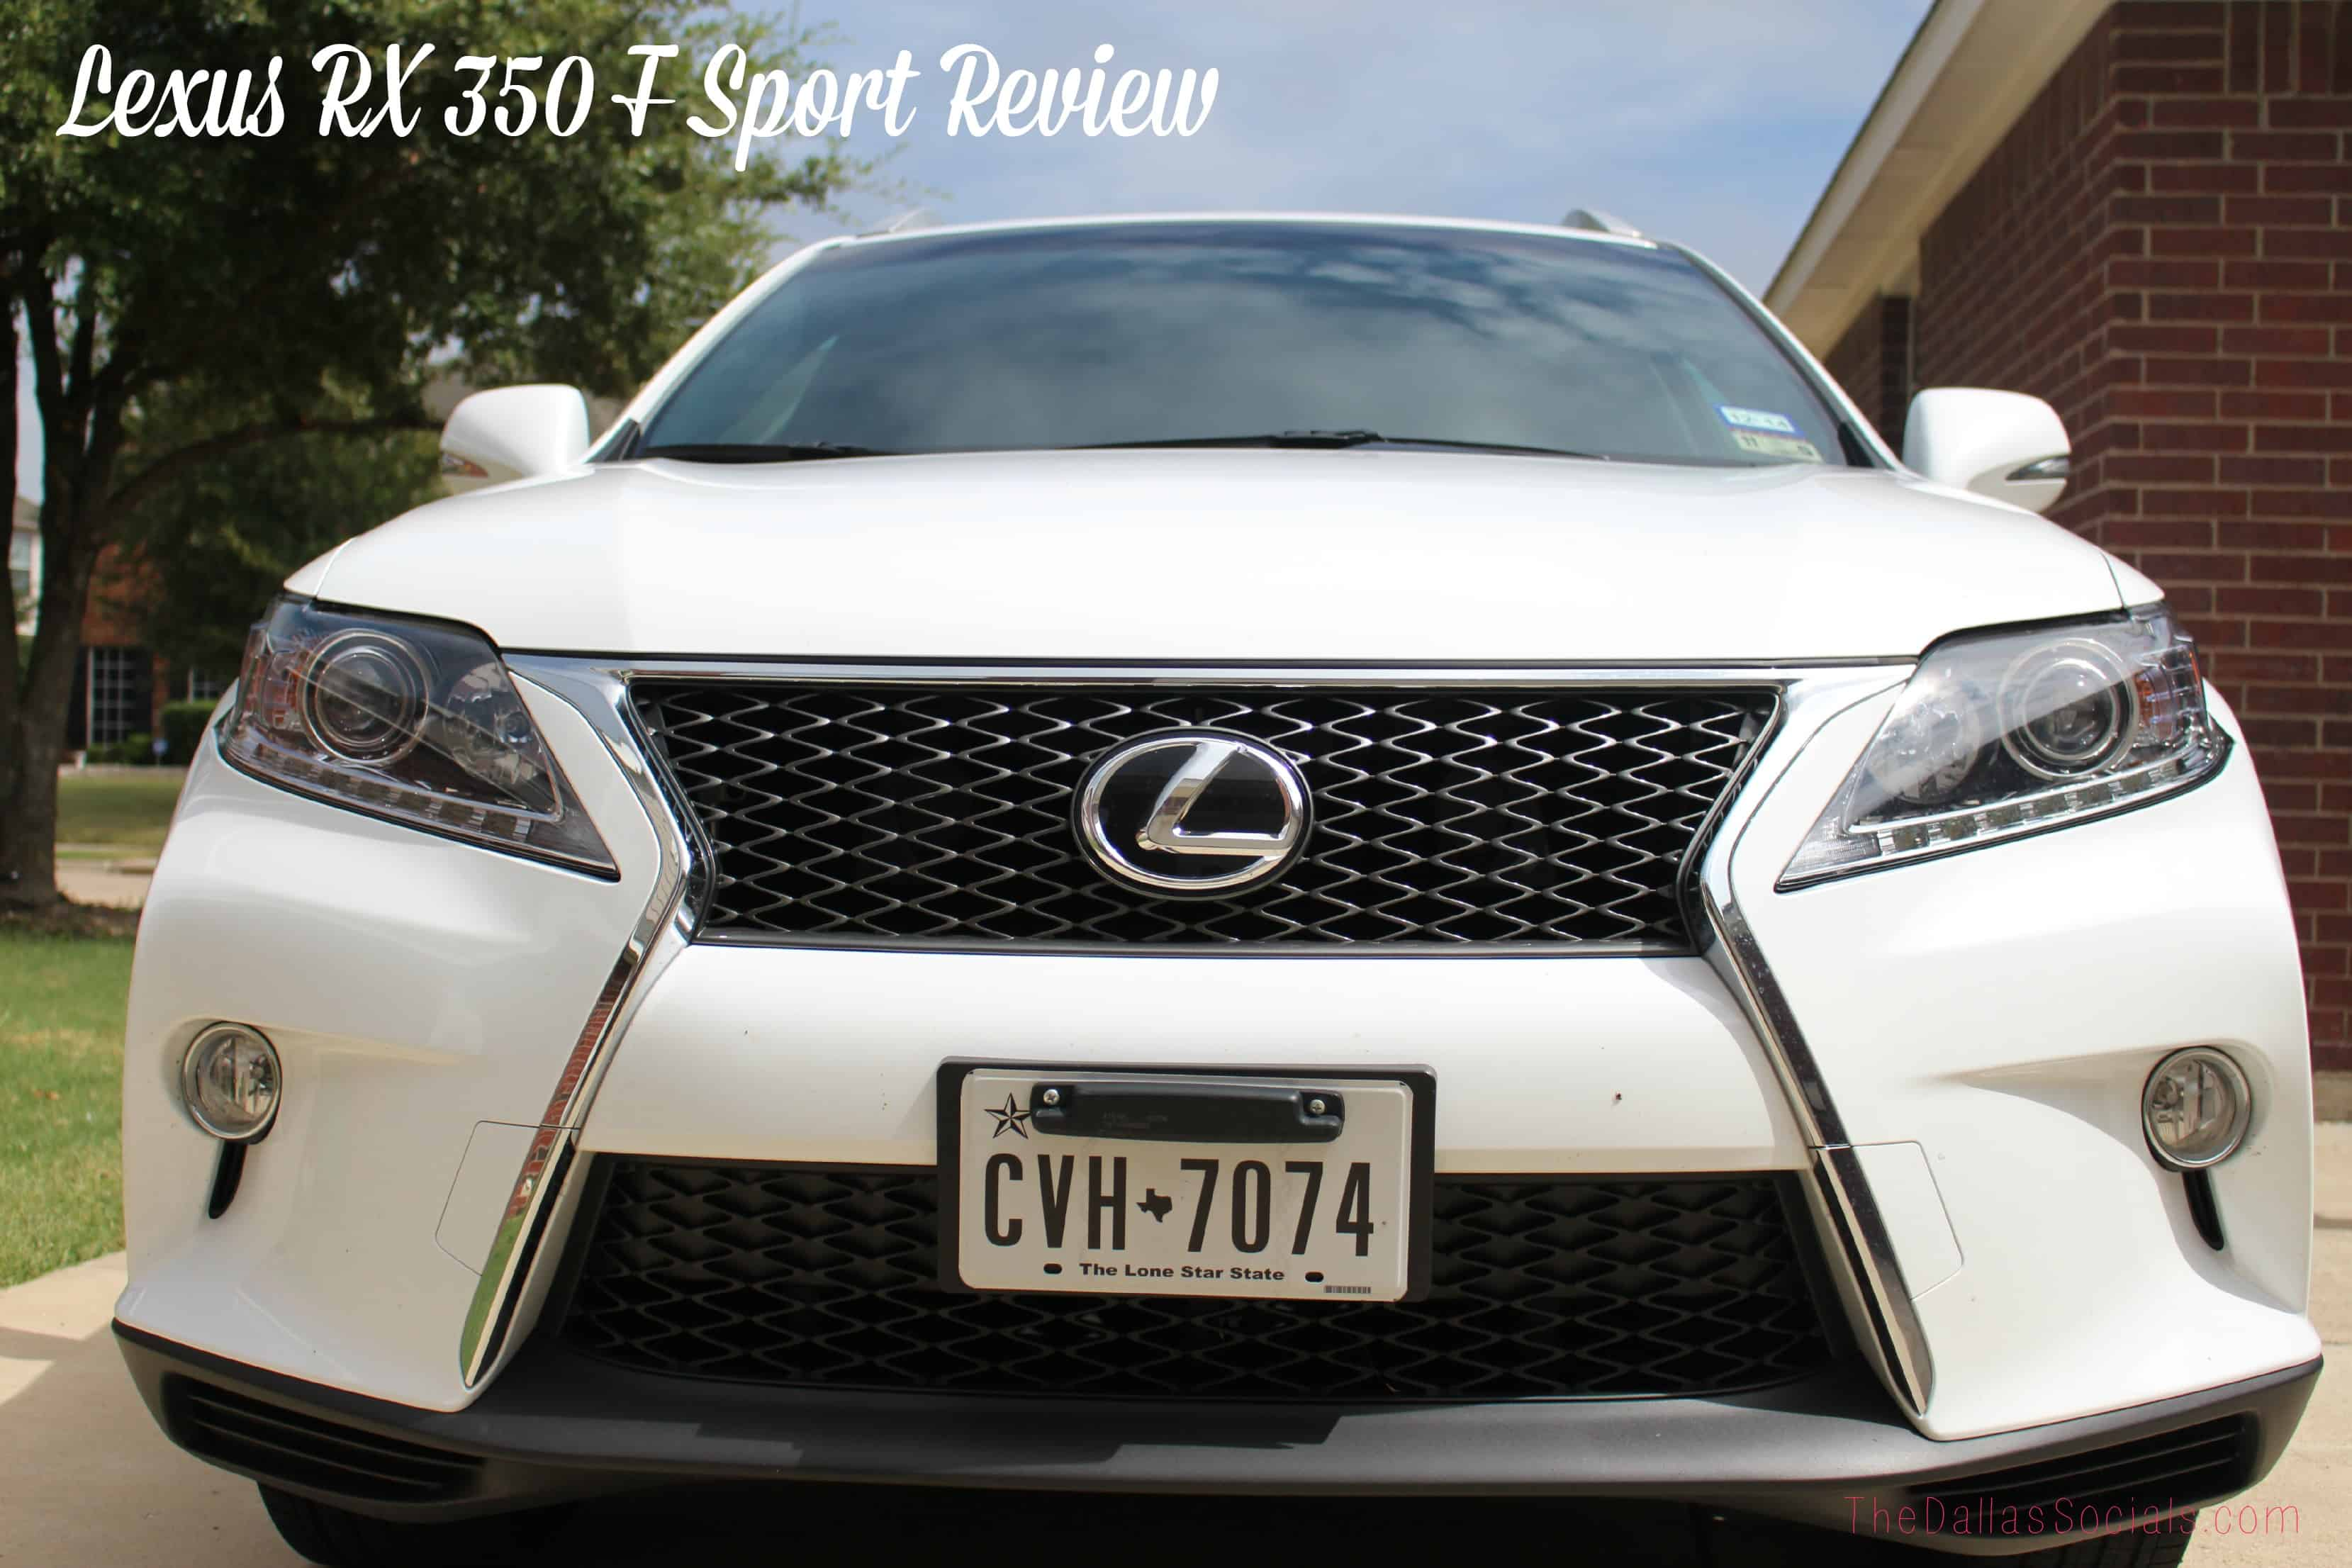 Lexus RX 350 F Sport Crossover Review